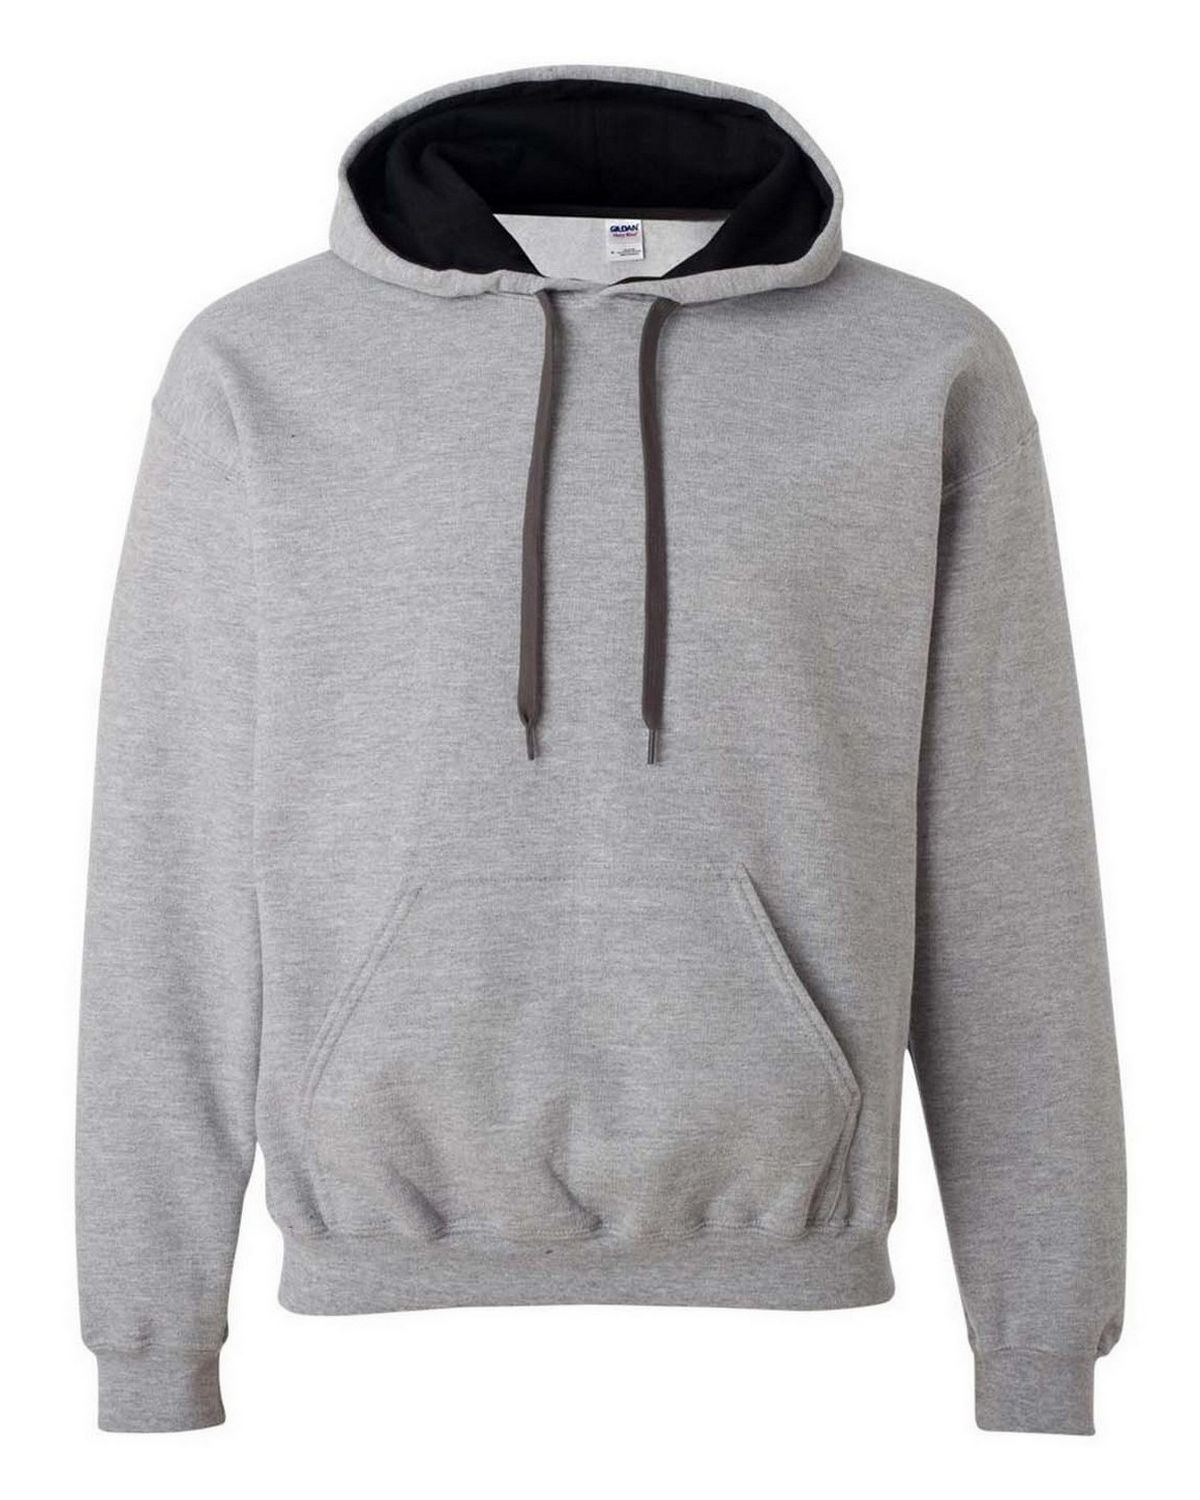 Gildan 185C00 Heavy Blend Hooded Sweatshirt - Black/Sport Grey - L 185C00